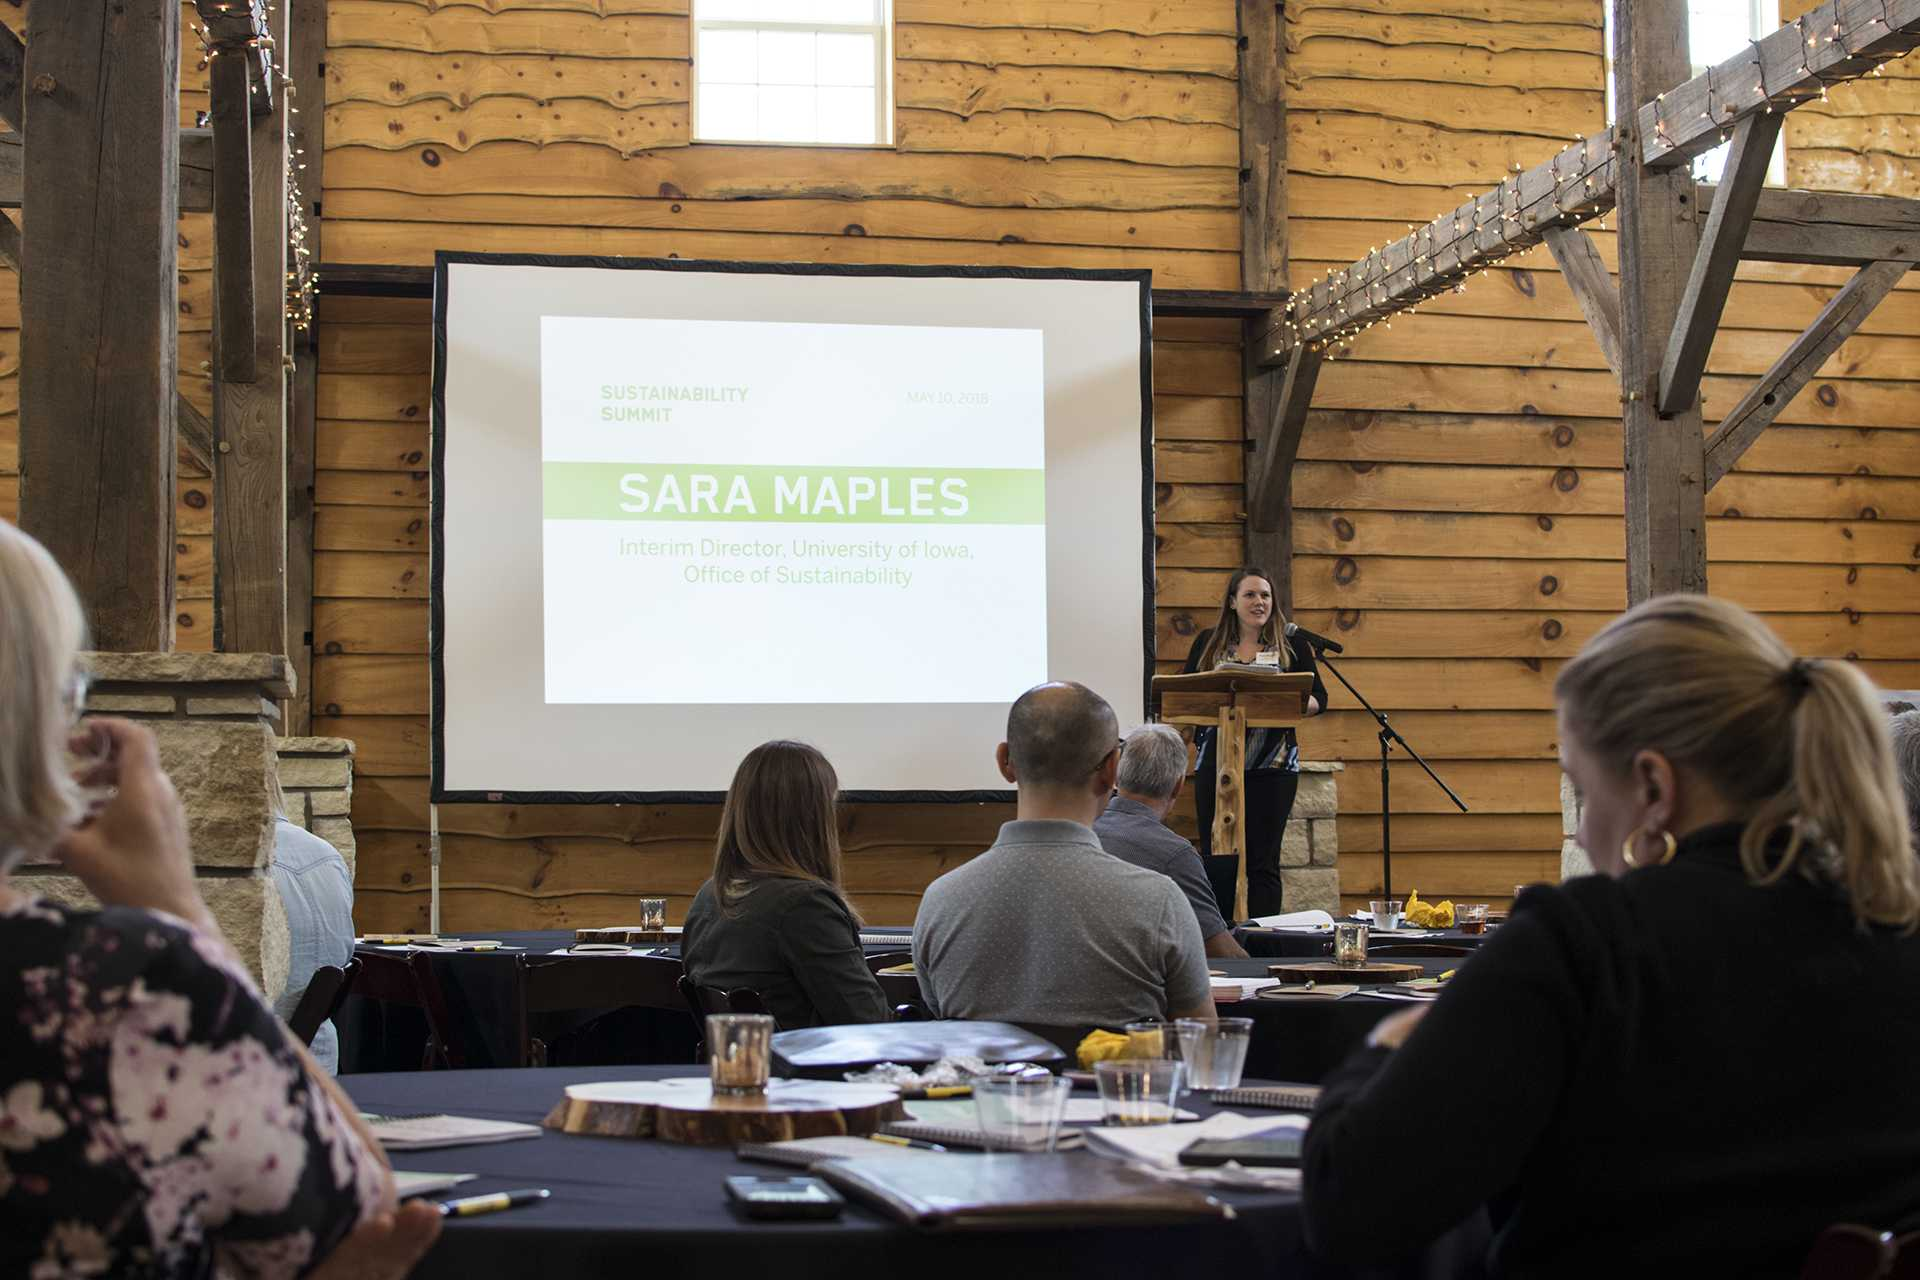 Interim Director Sara Maples speaks at the faculty sustainability summit on May 10. (Thomas A. Stewart/The Daily Iowan)